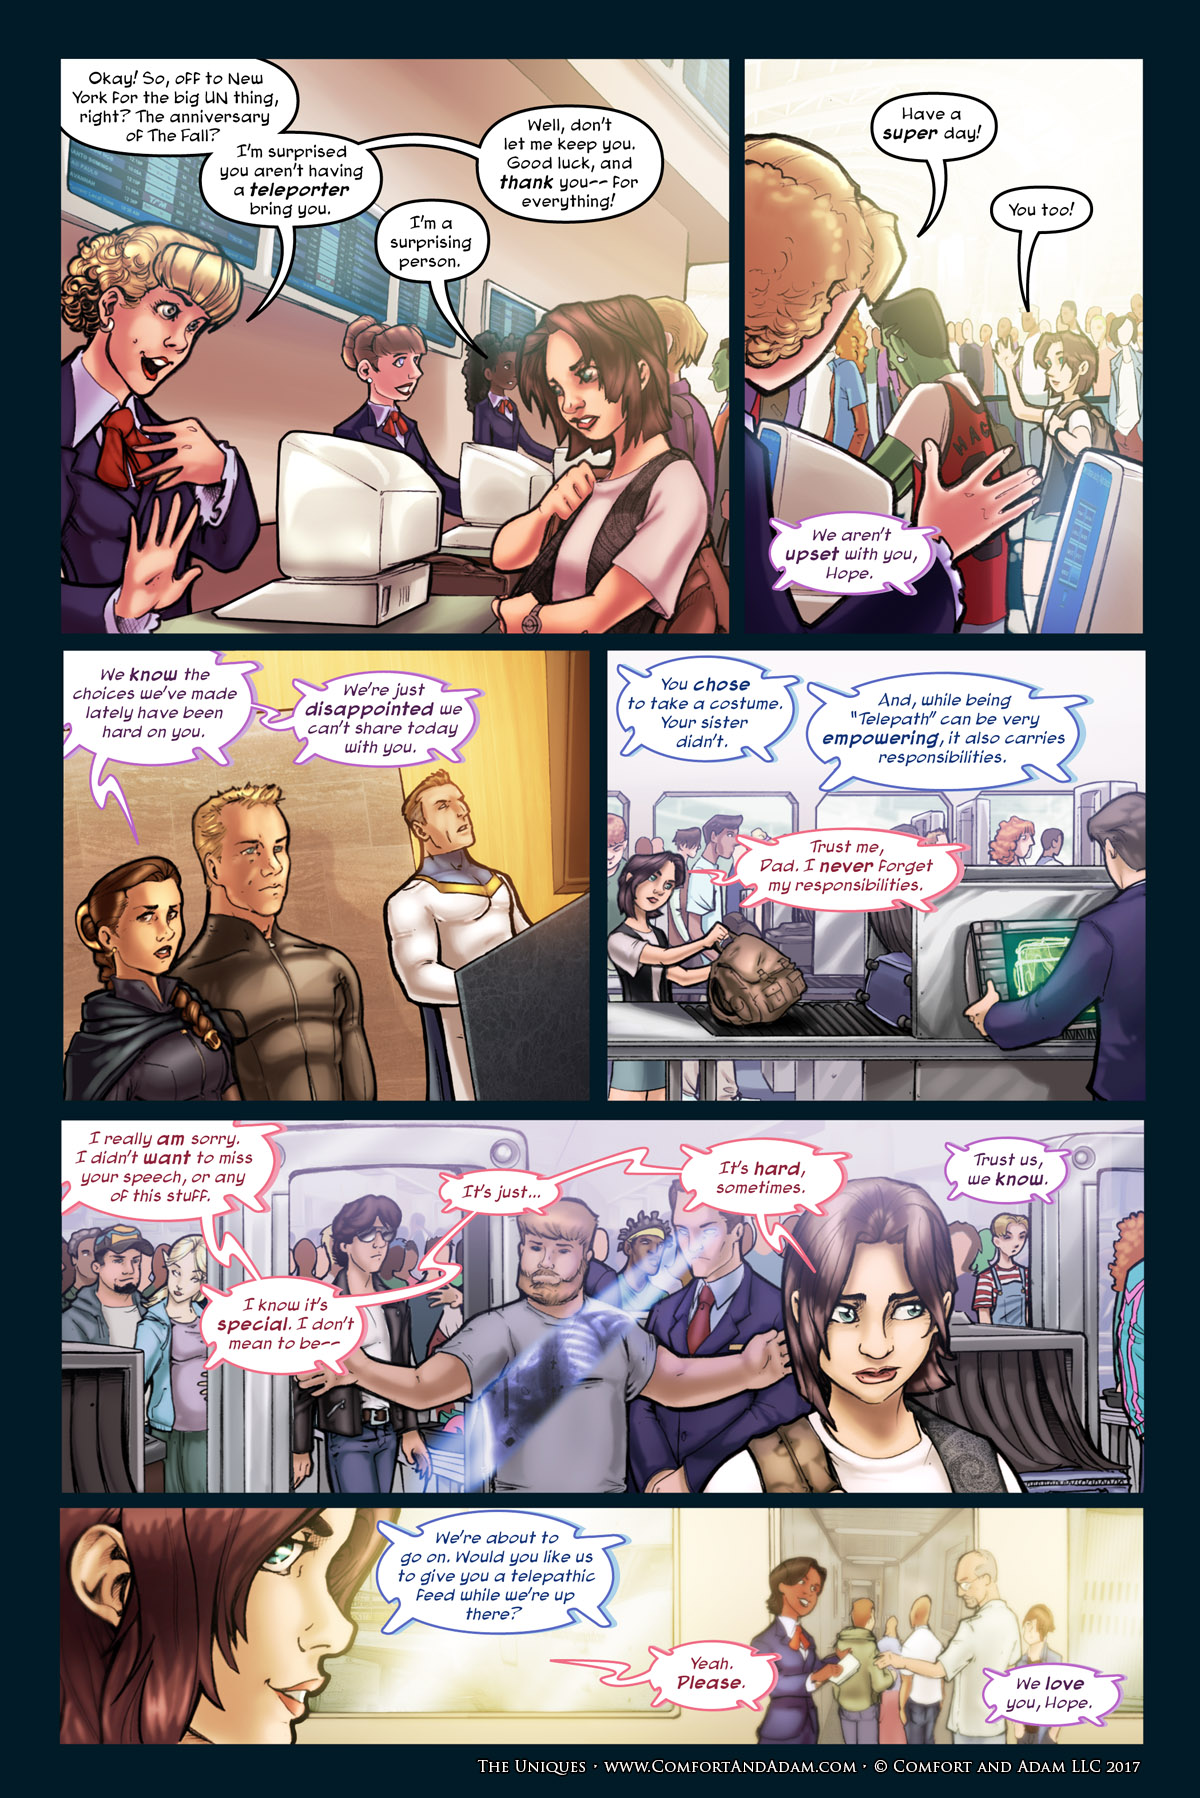 The Uniques #1 pg. 16: Airport Security